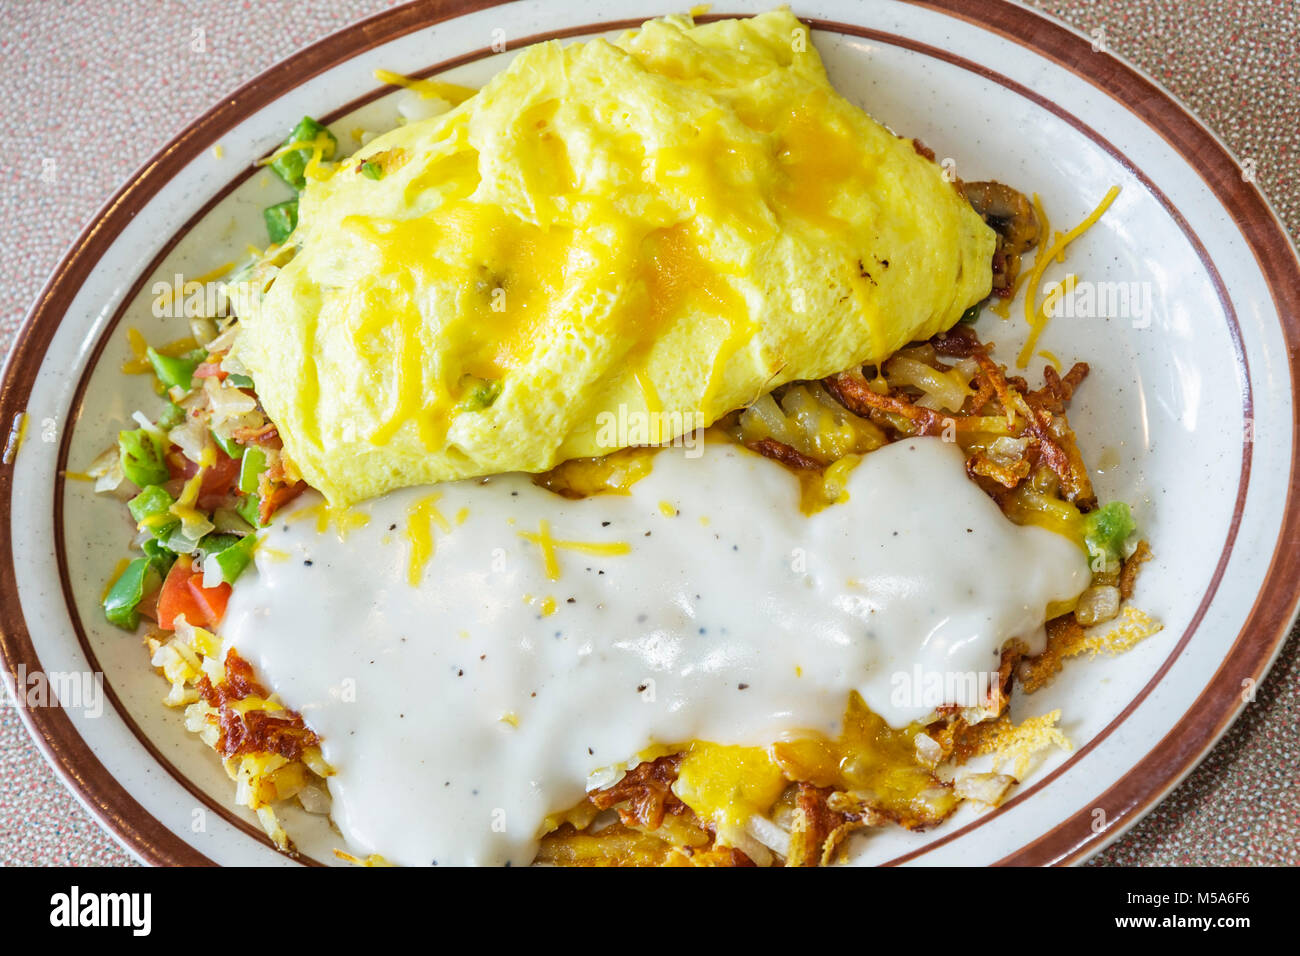 Hialeah Gardens Denny's Restaurant Ultimate Omelet hash browns food plate breakfast sauce - Stock Image